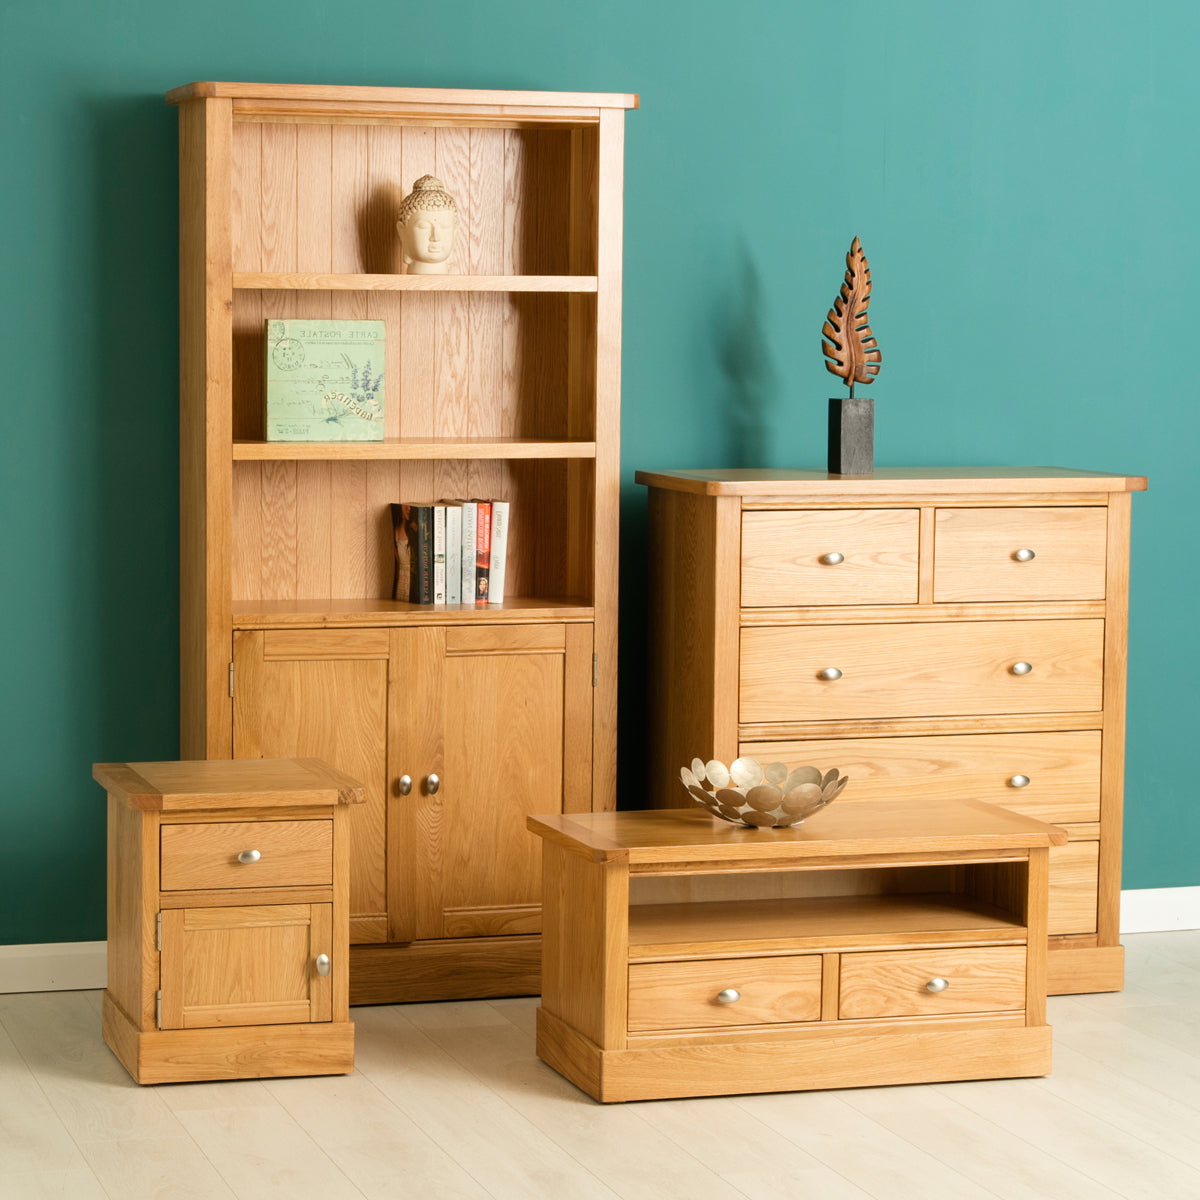 Hampshire Oak Quality Furniture